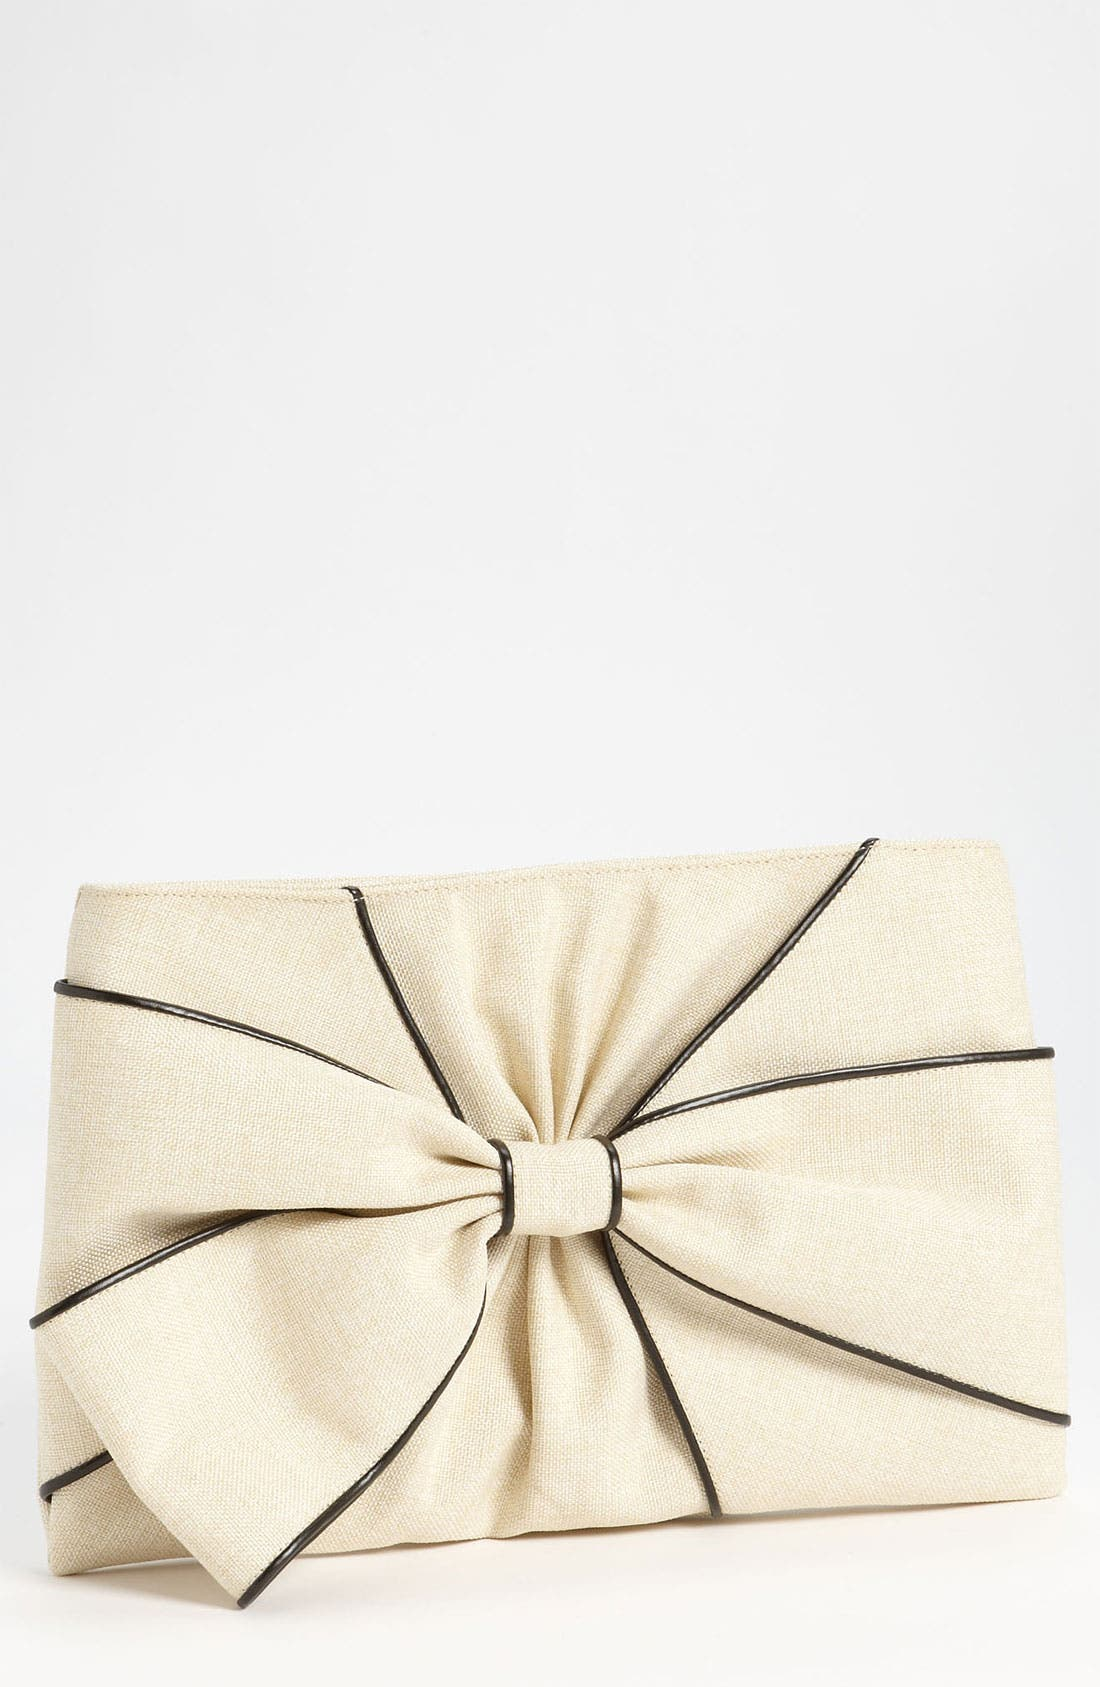 Main Image - kate spade new york 'hope avenue - jesslyn' clutch